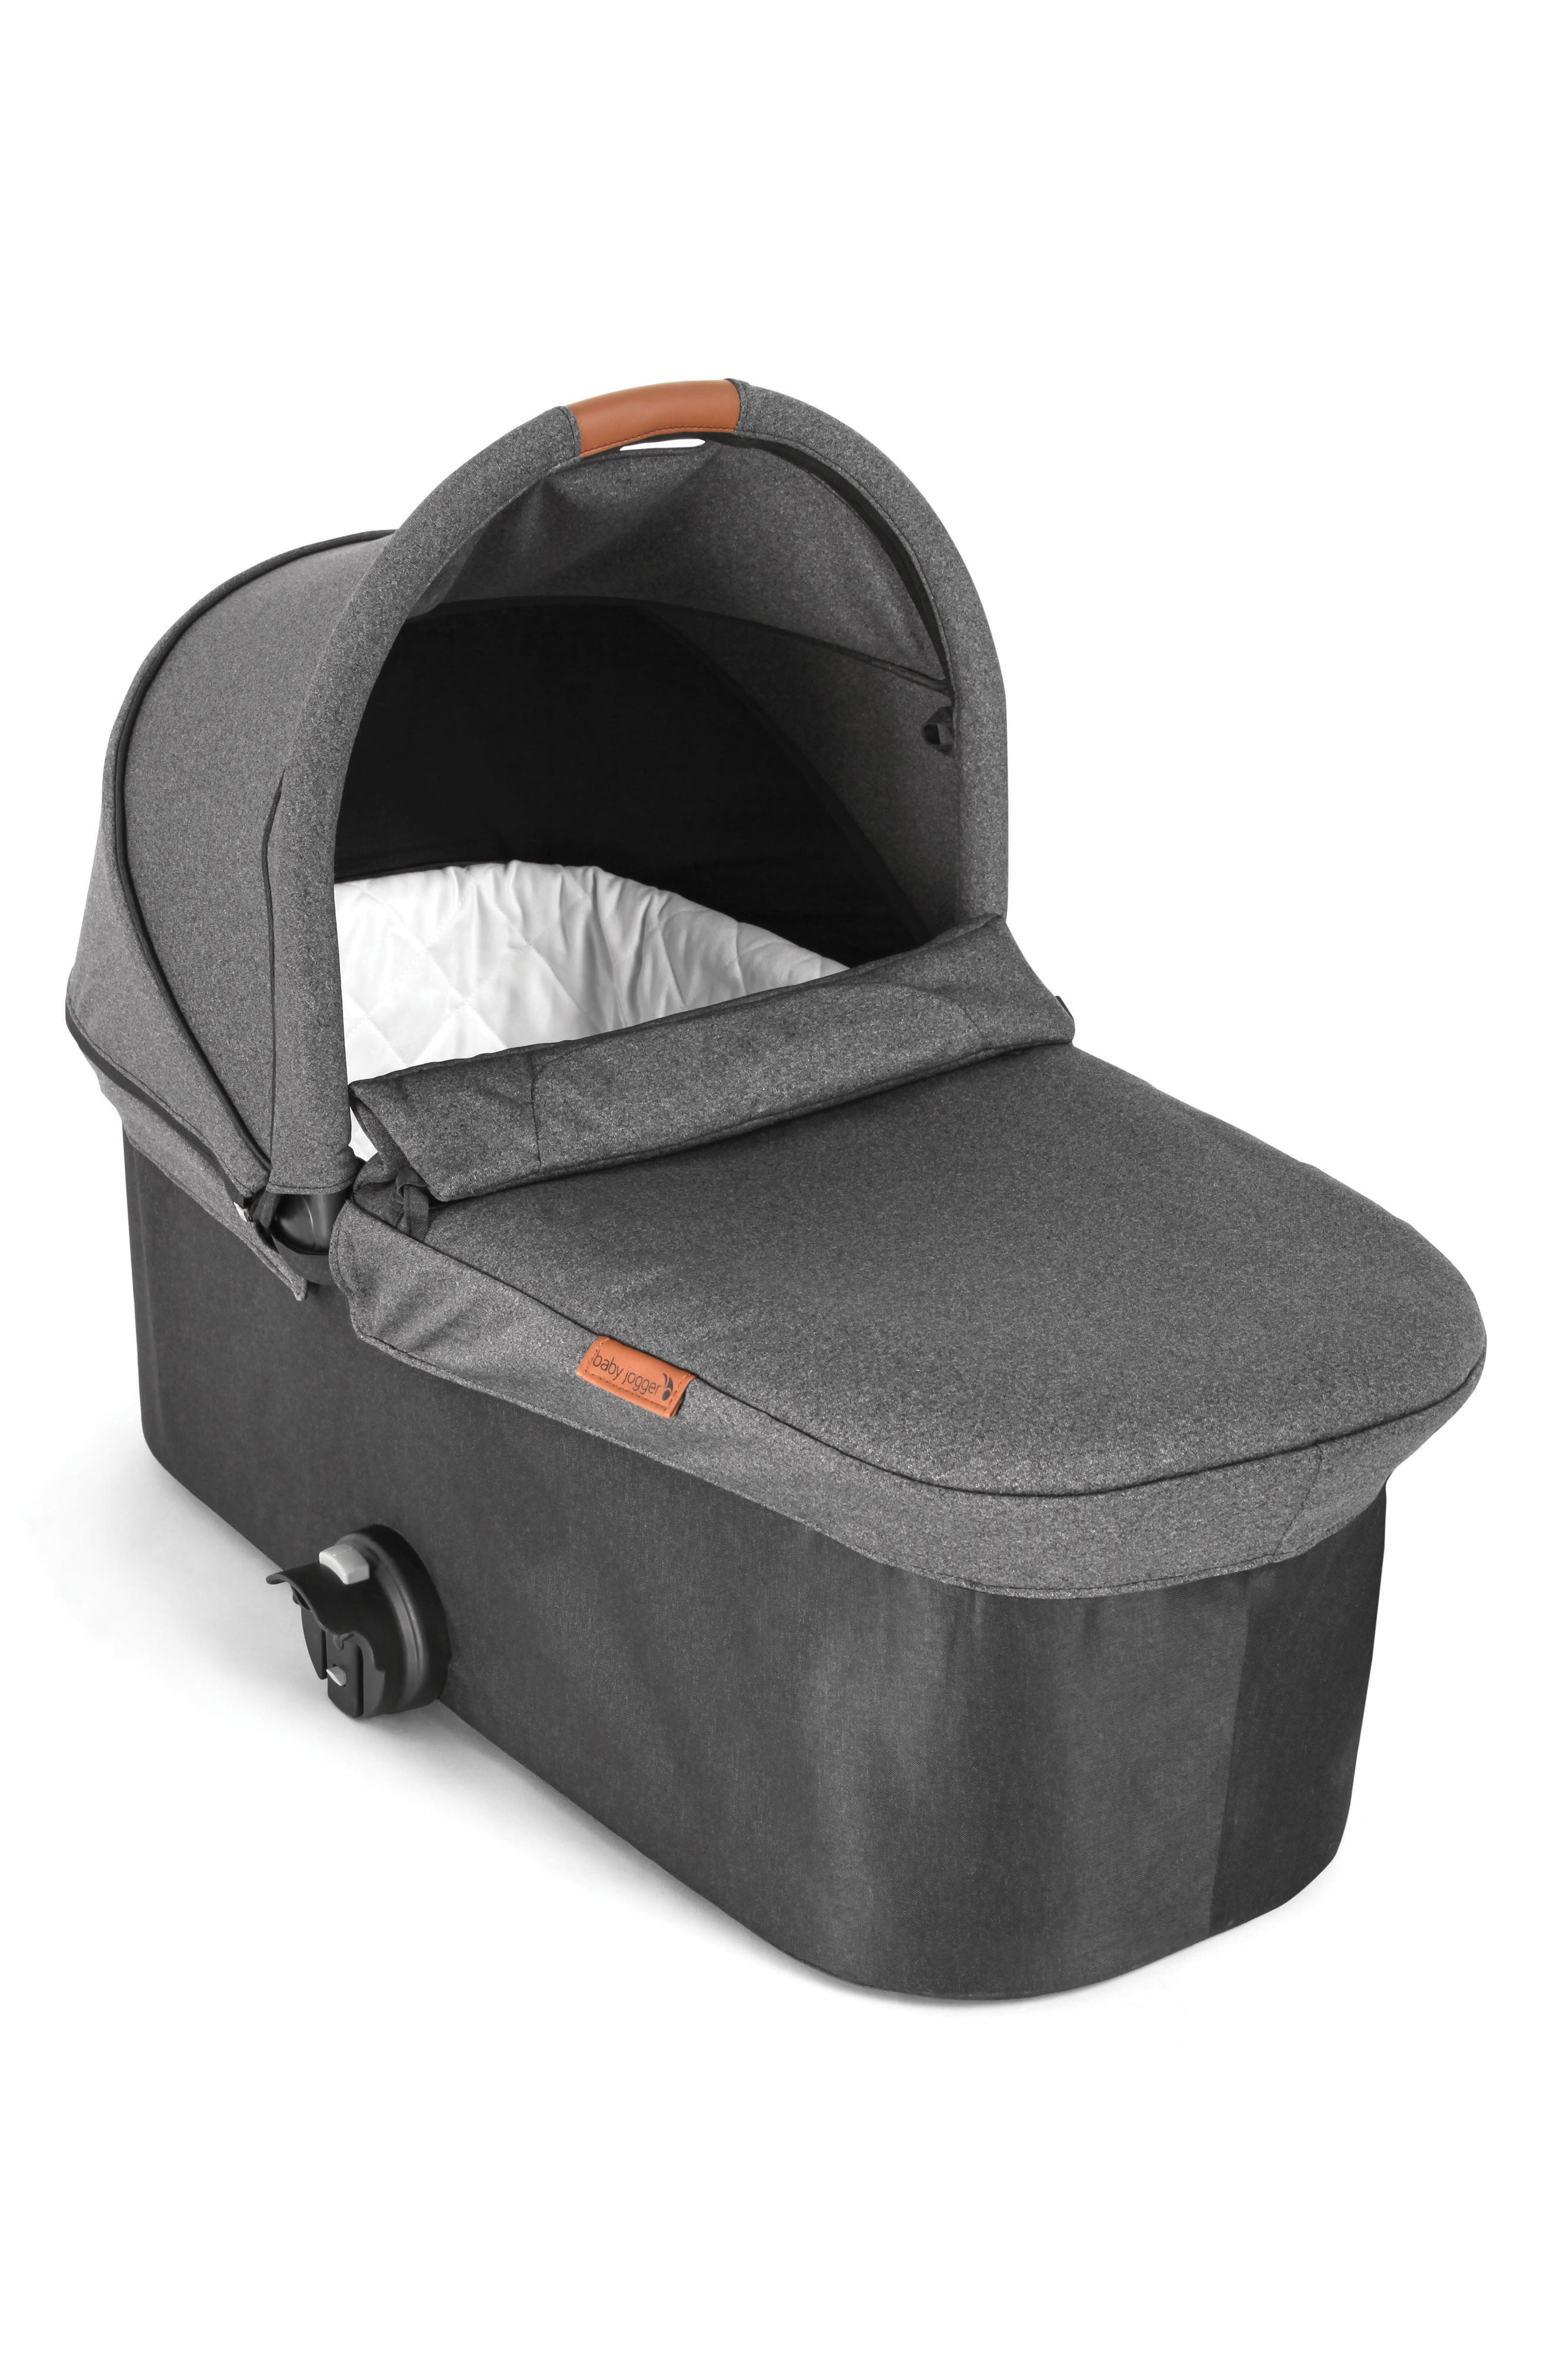 BABY JOGGER Deluxe Pram Converter Kit for City Mini<sup>®</sup> 2018 Special Edition 10-Year Anniversary All-Terrain Stroller, Main, color, 020